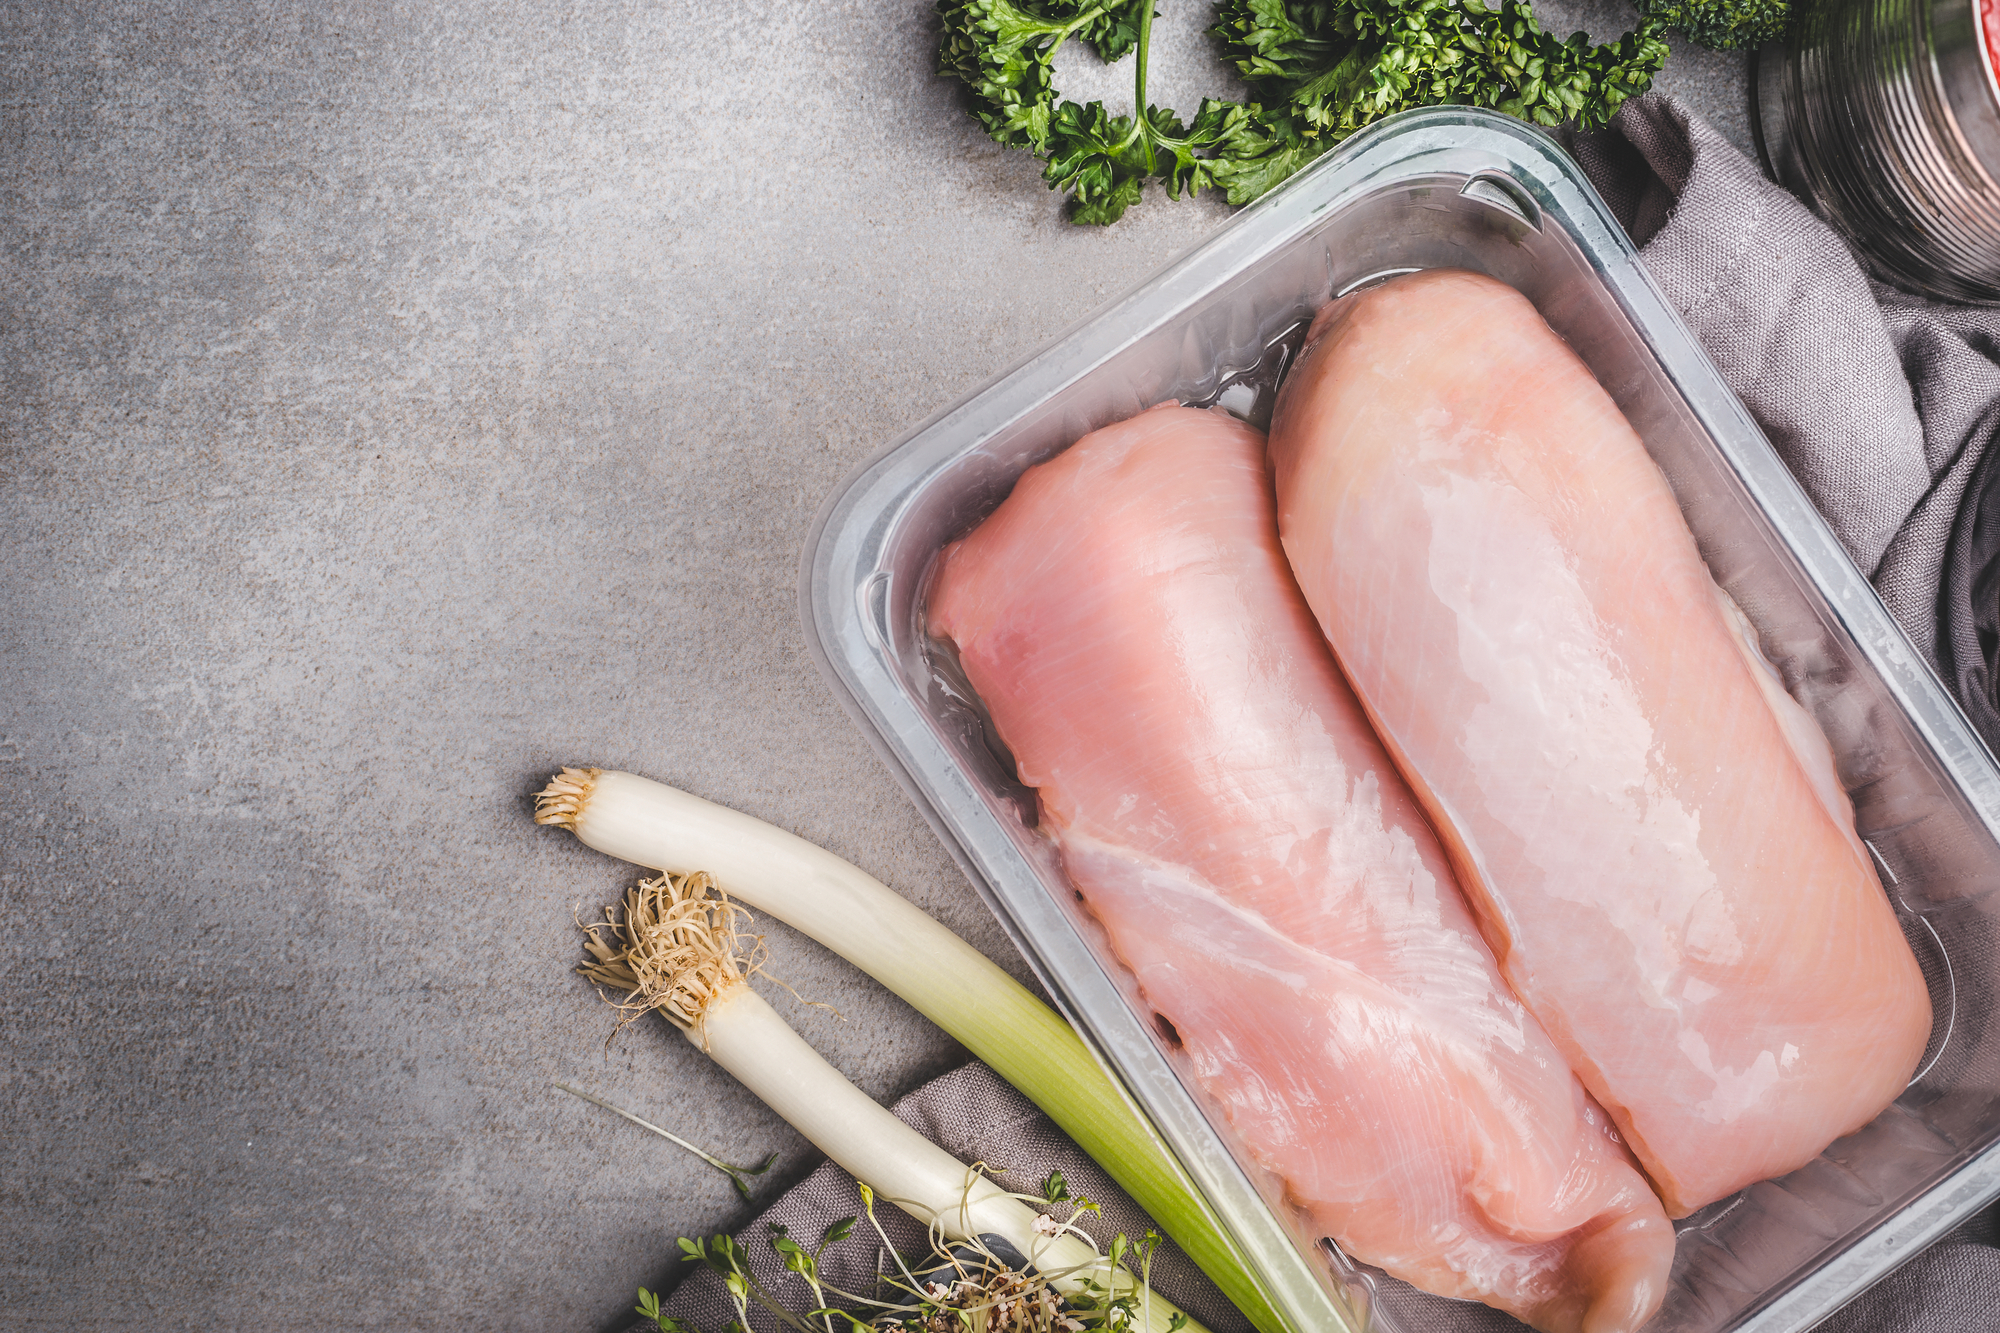 Raw chicken breast fillet in plastic box with green seasoning on concrete background